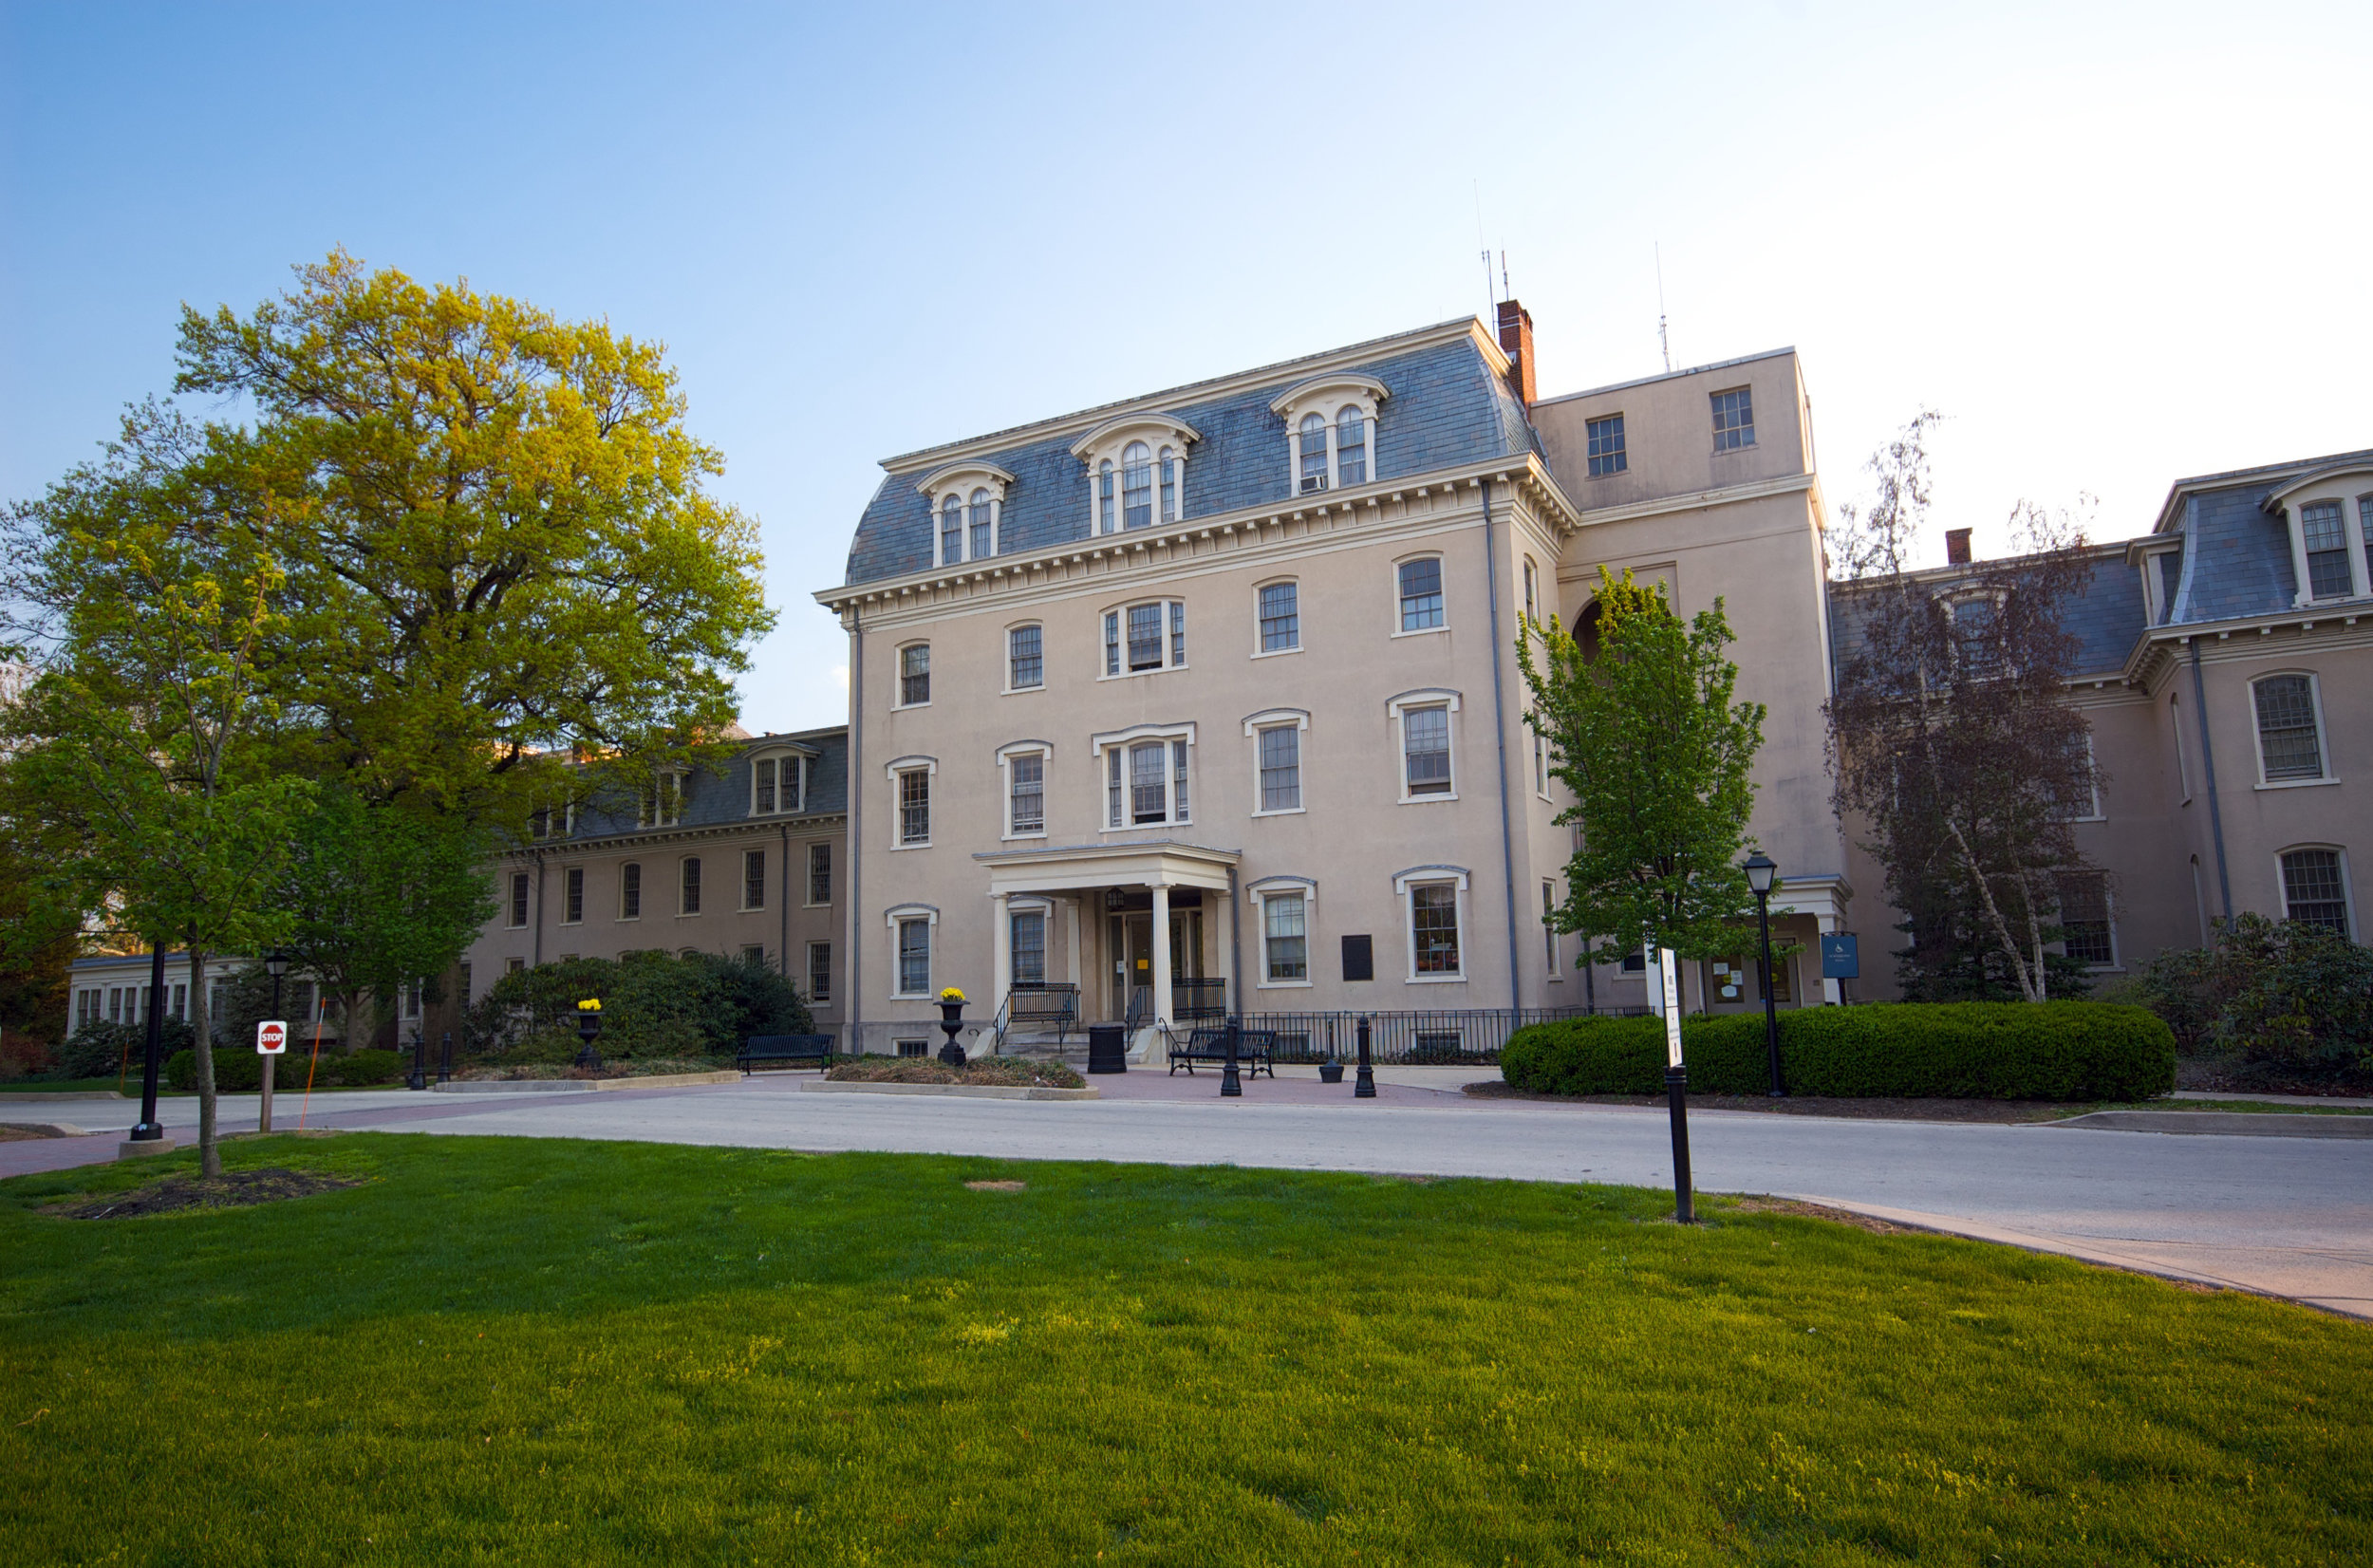 Friends Hospital was founded by Philadelphia Quakers in 1813, inspired by the Moral Treatment reforms pioneered at York Retreat and at Salpêtrière.